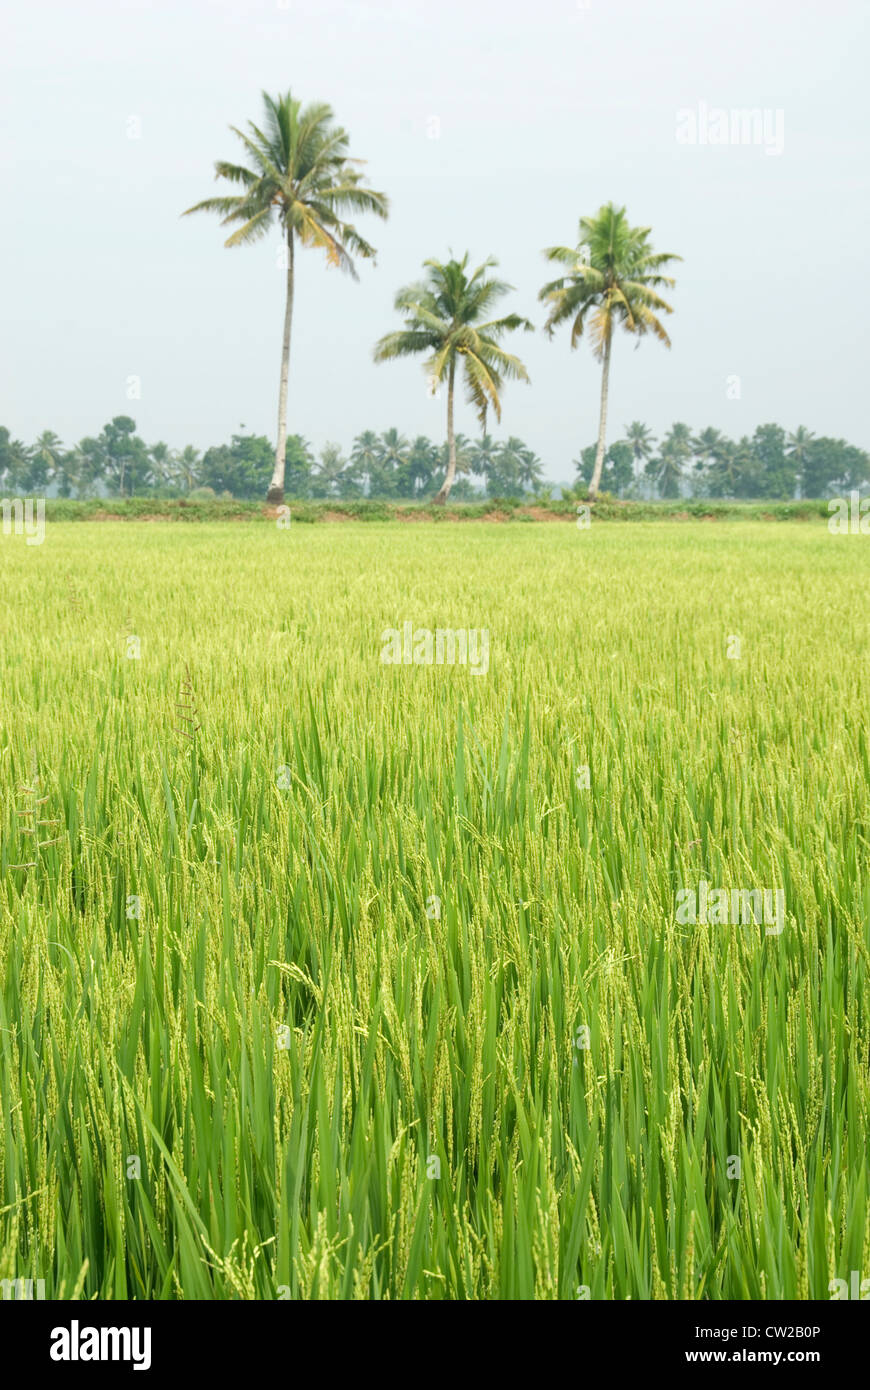 Paddy field in Kerala with coconut trees in the background - Alappuzha. - Stock Image